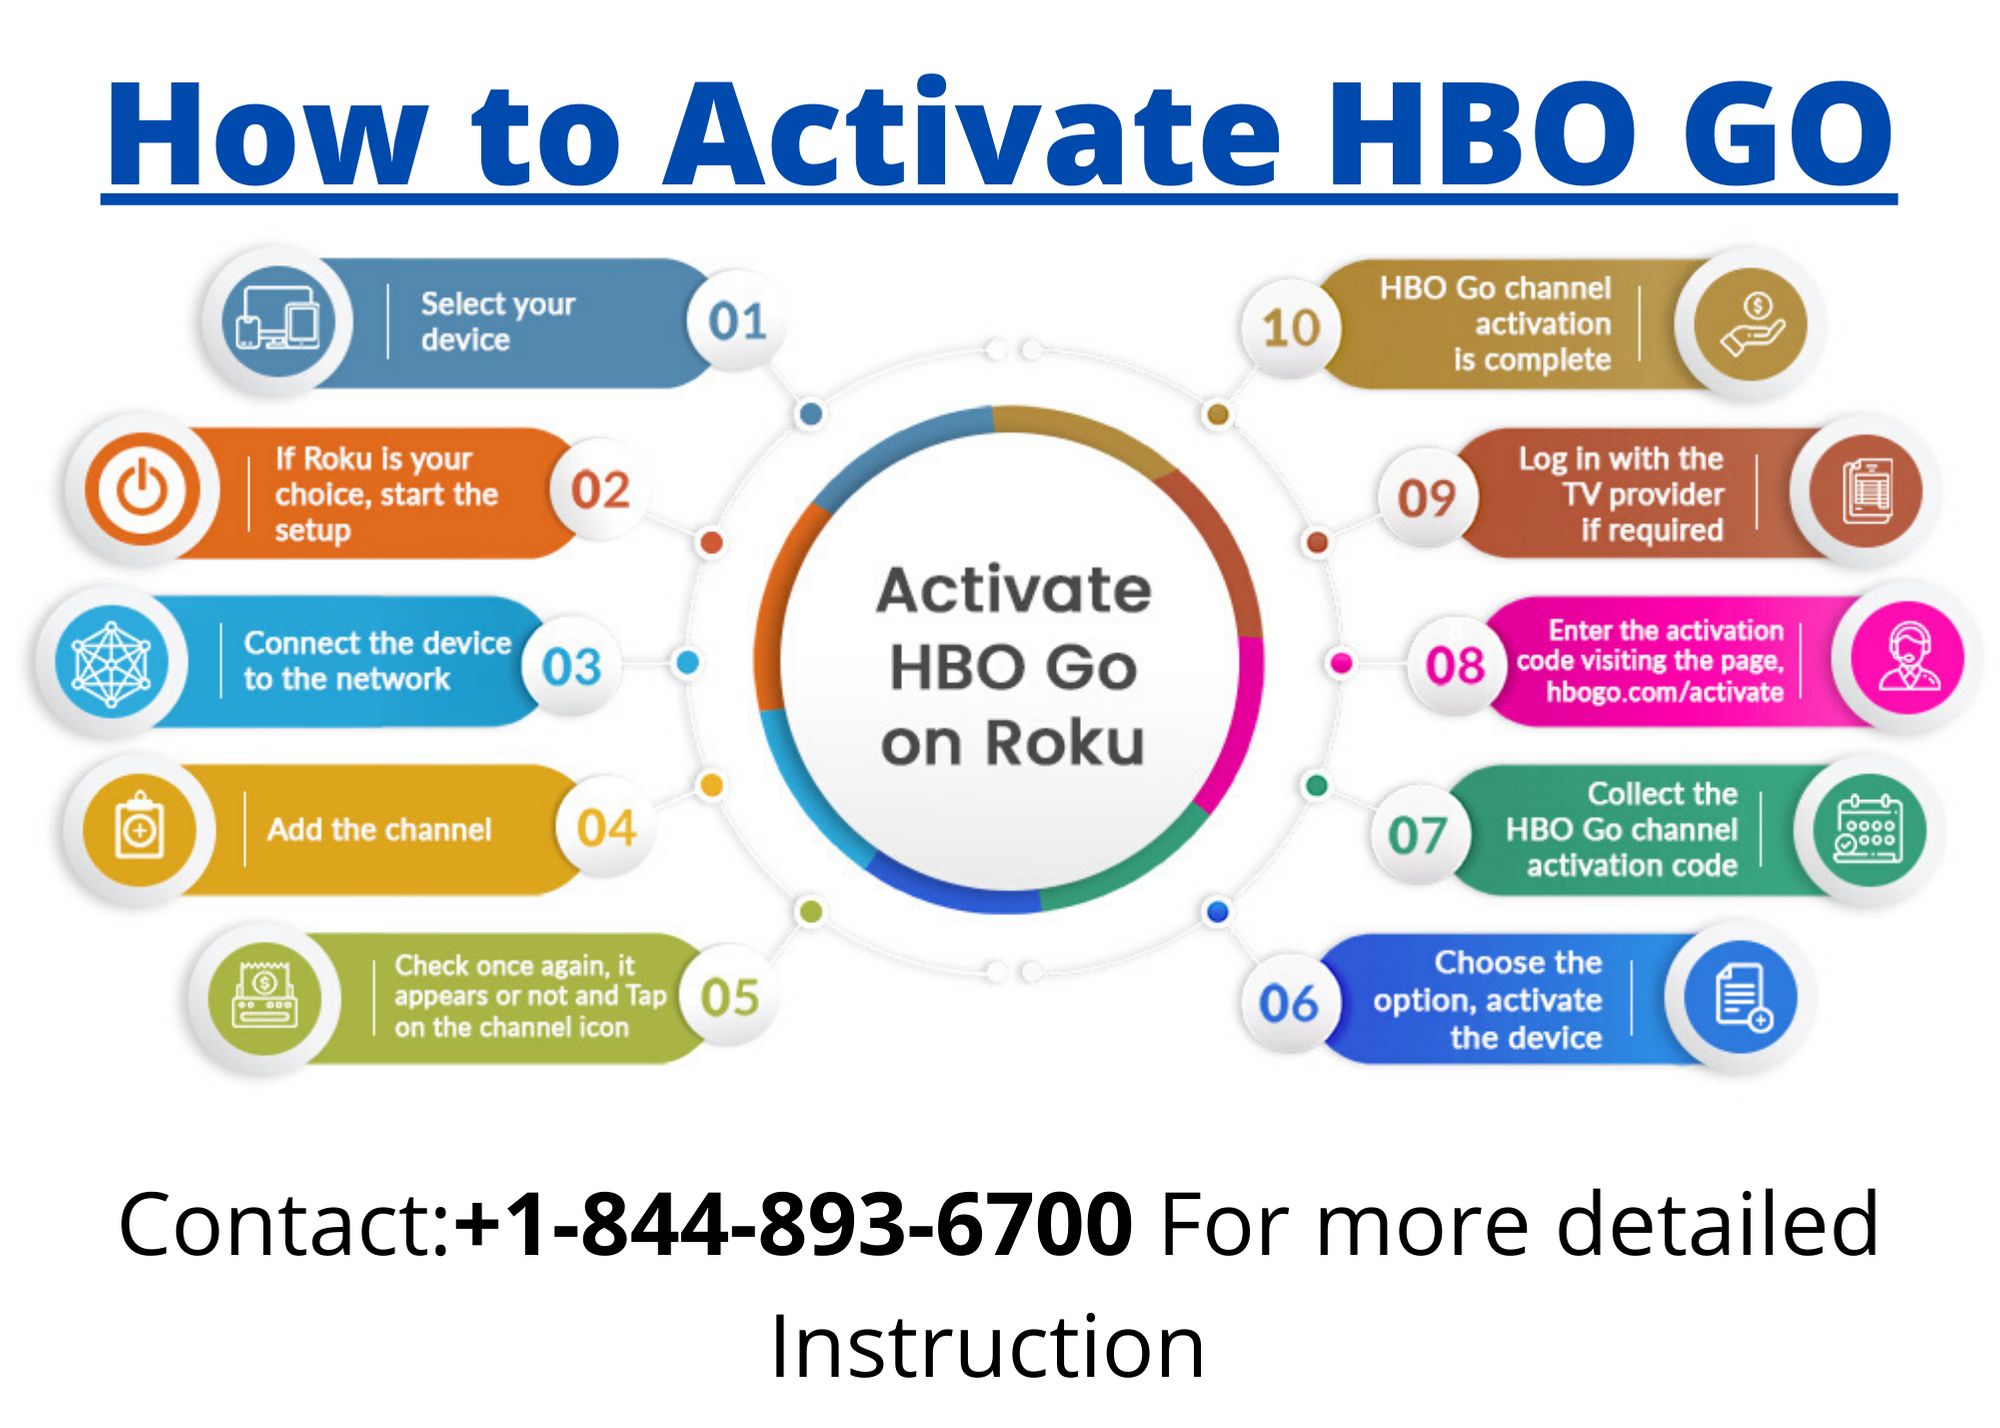 How to activate HBO Go using hbogo.com/activate